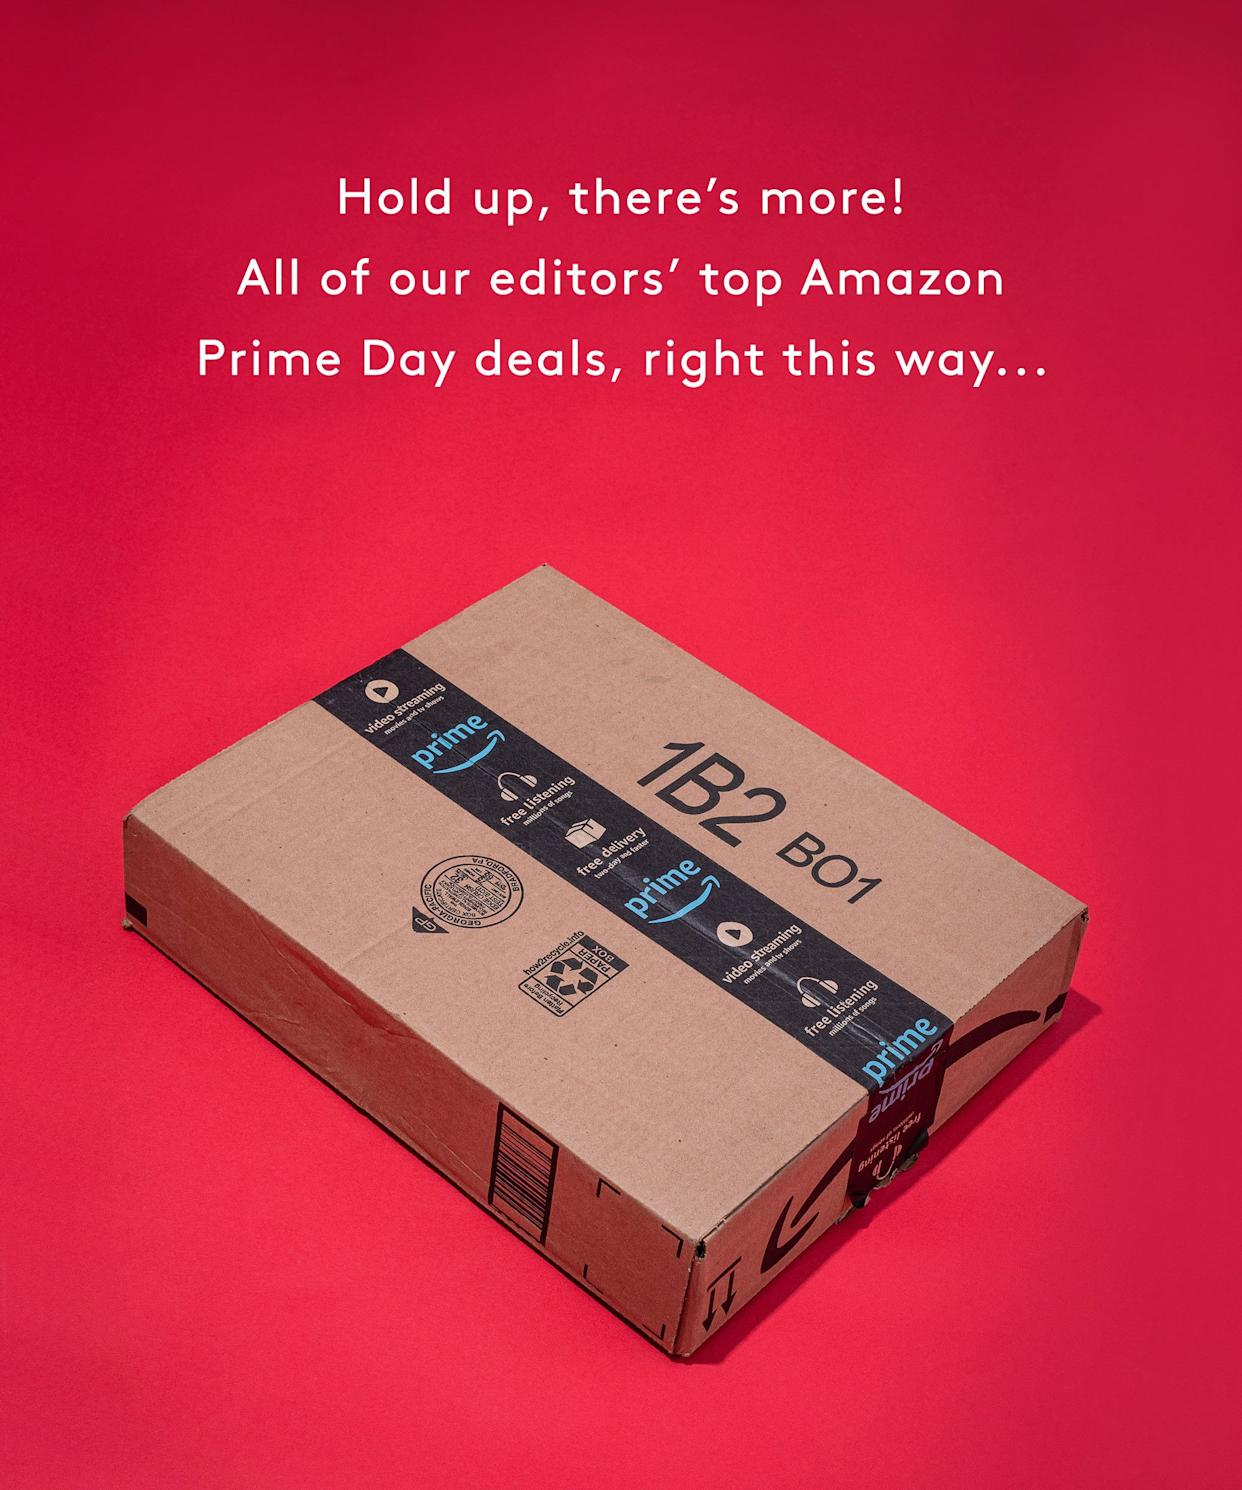 """<p>Hold up, there's more!</p> <p><a href=""""https://www.refinery29.com/en-us/amazon-prime-day"""" rel=""""nofollow noopener"""" target=""""_blank"""" data-ylk=""""slk:All of our editors' top Amazon Prime Day deals, right this way..."""" class=""""link rapid-noclick-resp"""">All of our editors' top Amazon Prime Day deals, right this way...</a></p>"""